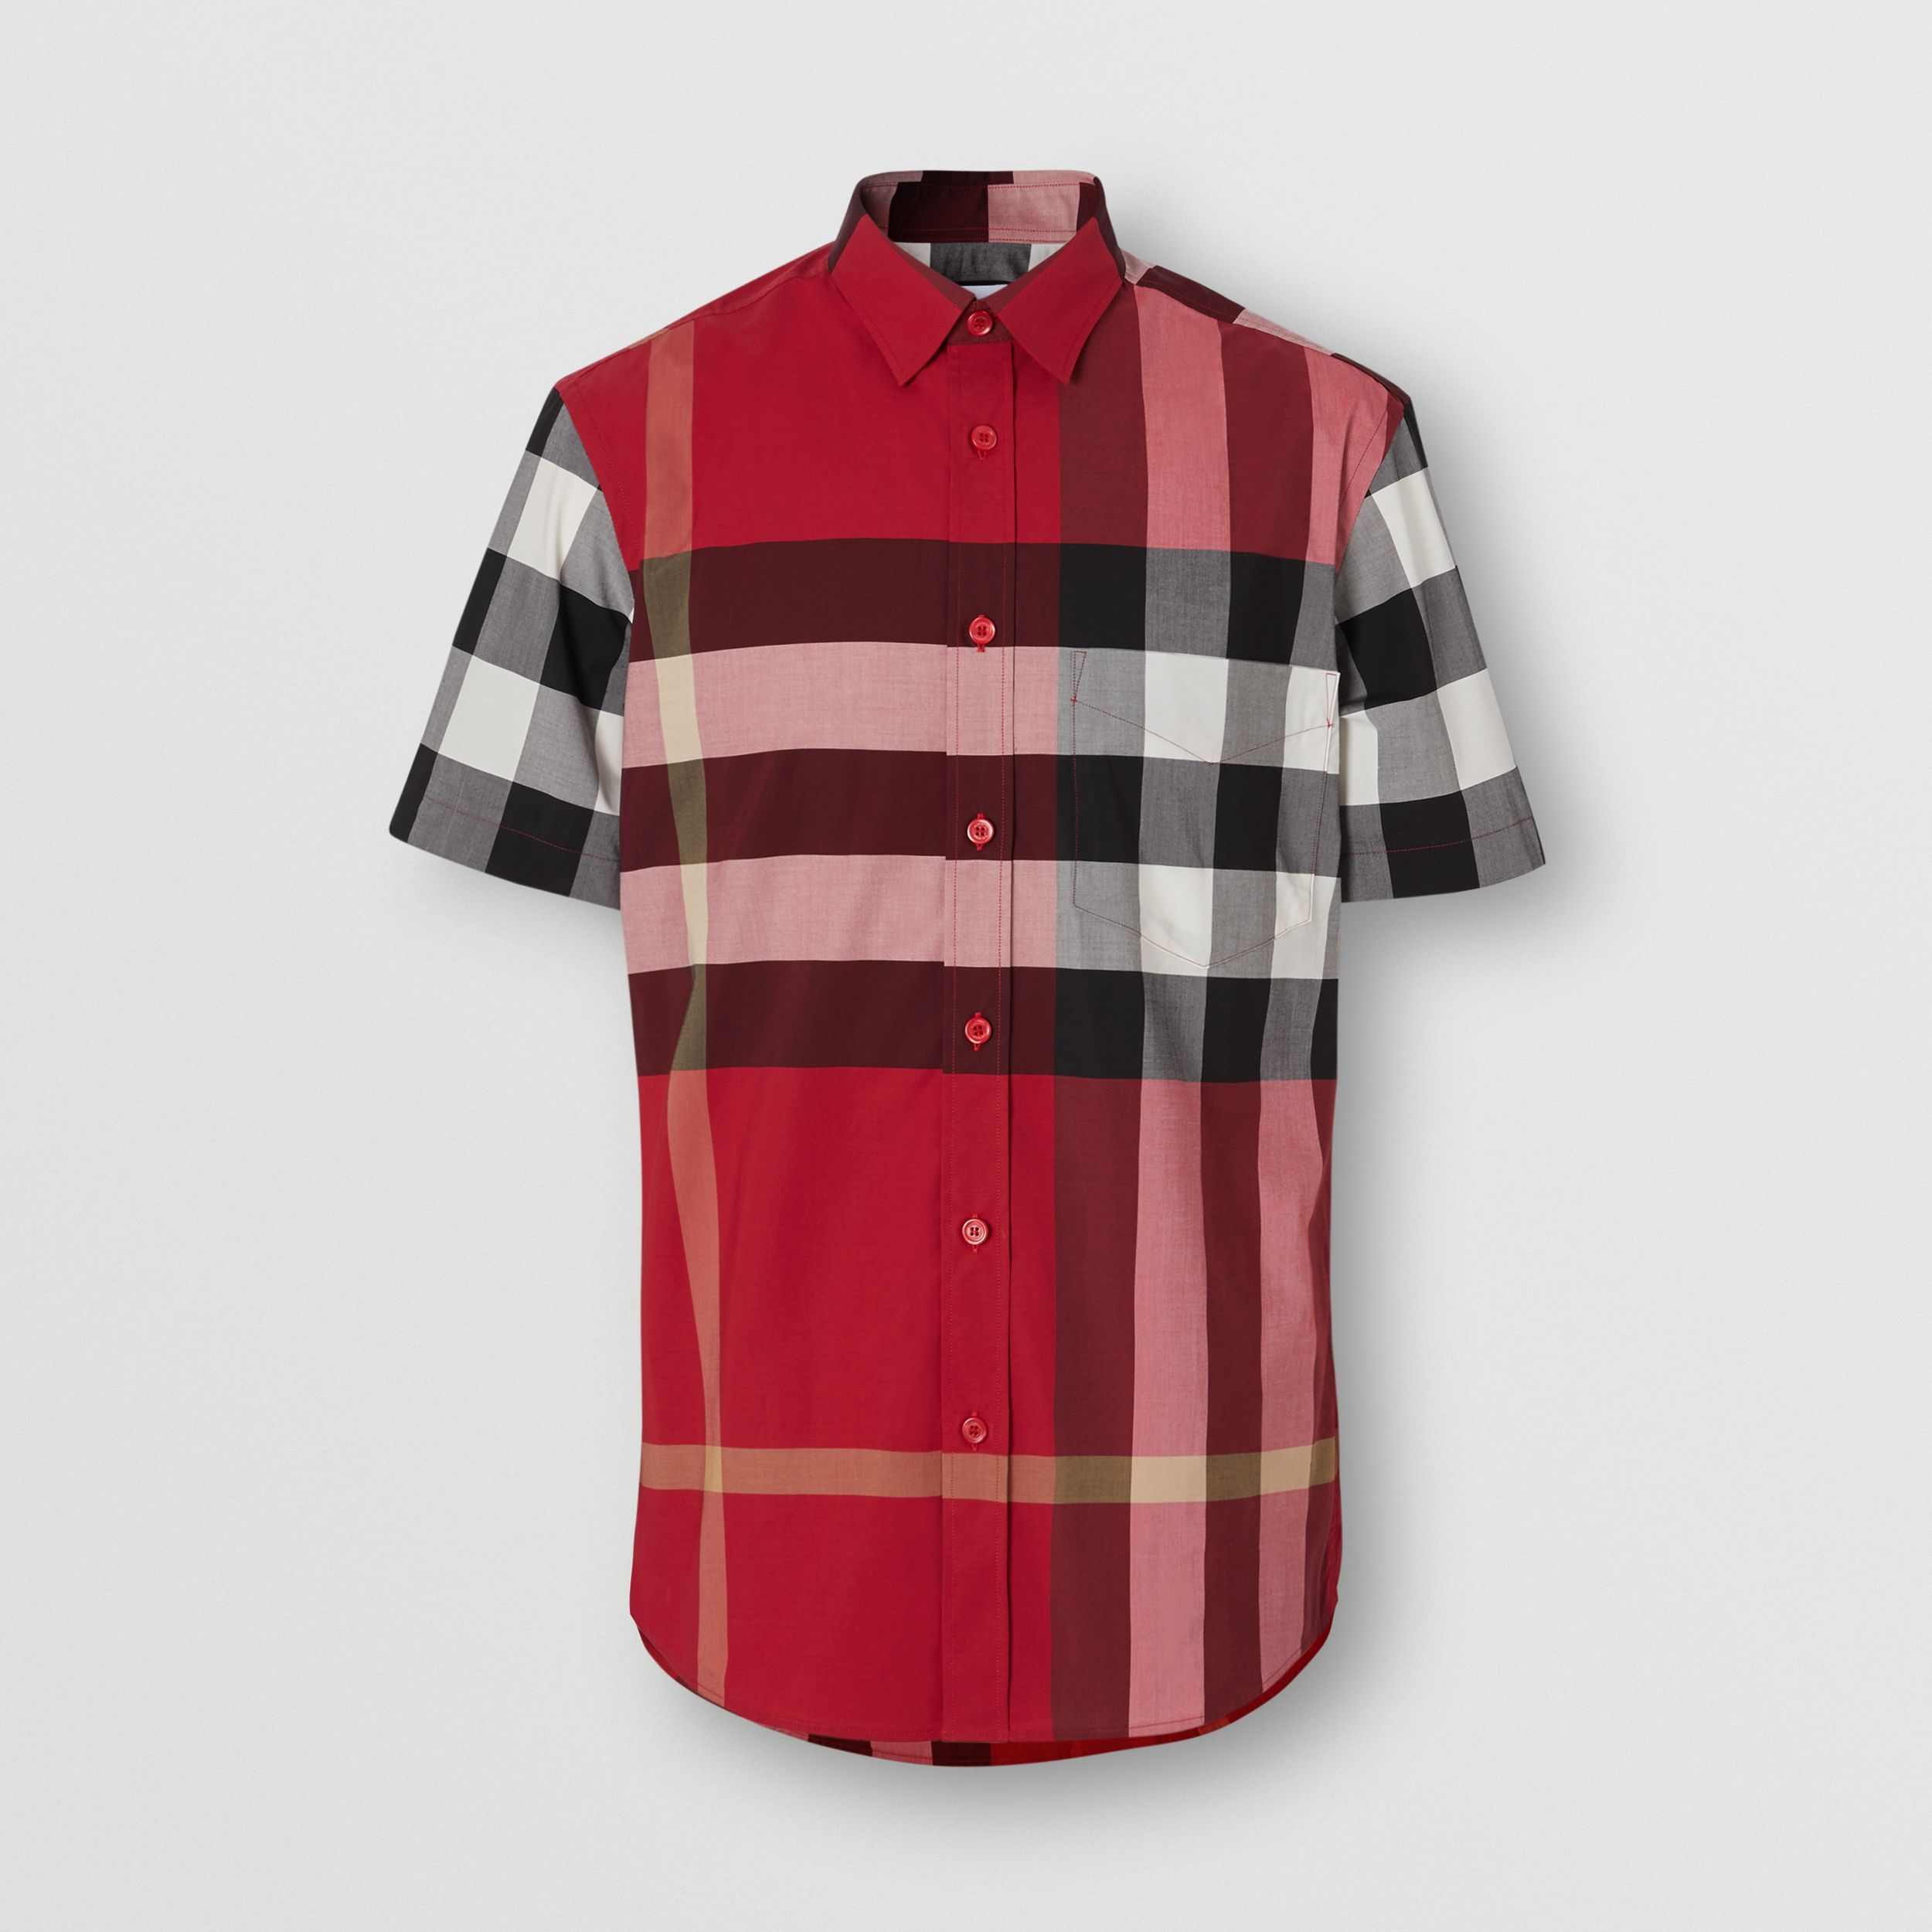 Short-sleeve Check Stretch Cotton Poplin Shirt in Parade Red - Men | Burberry - 4